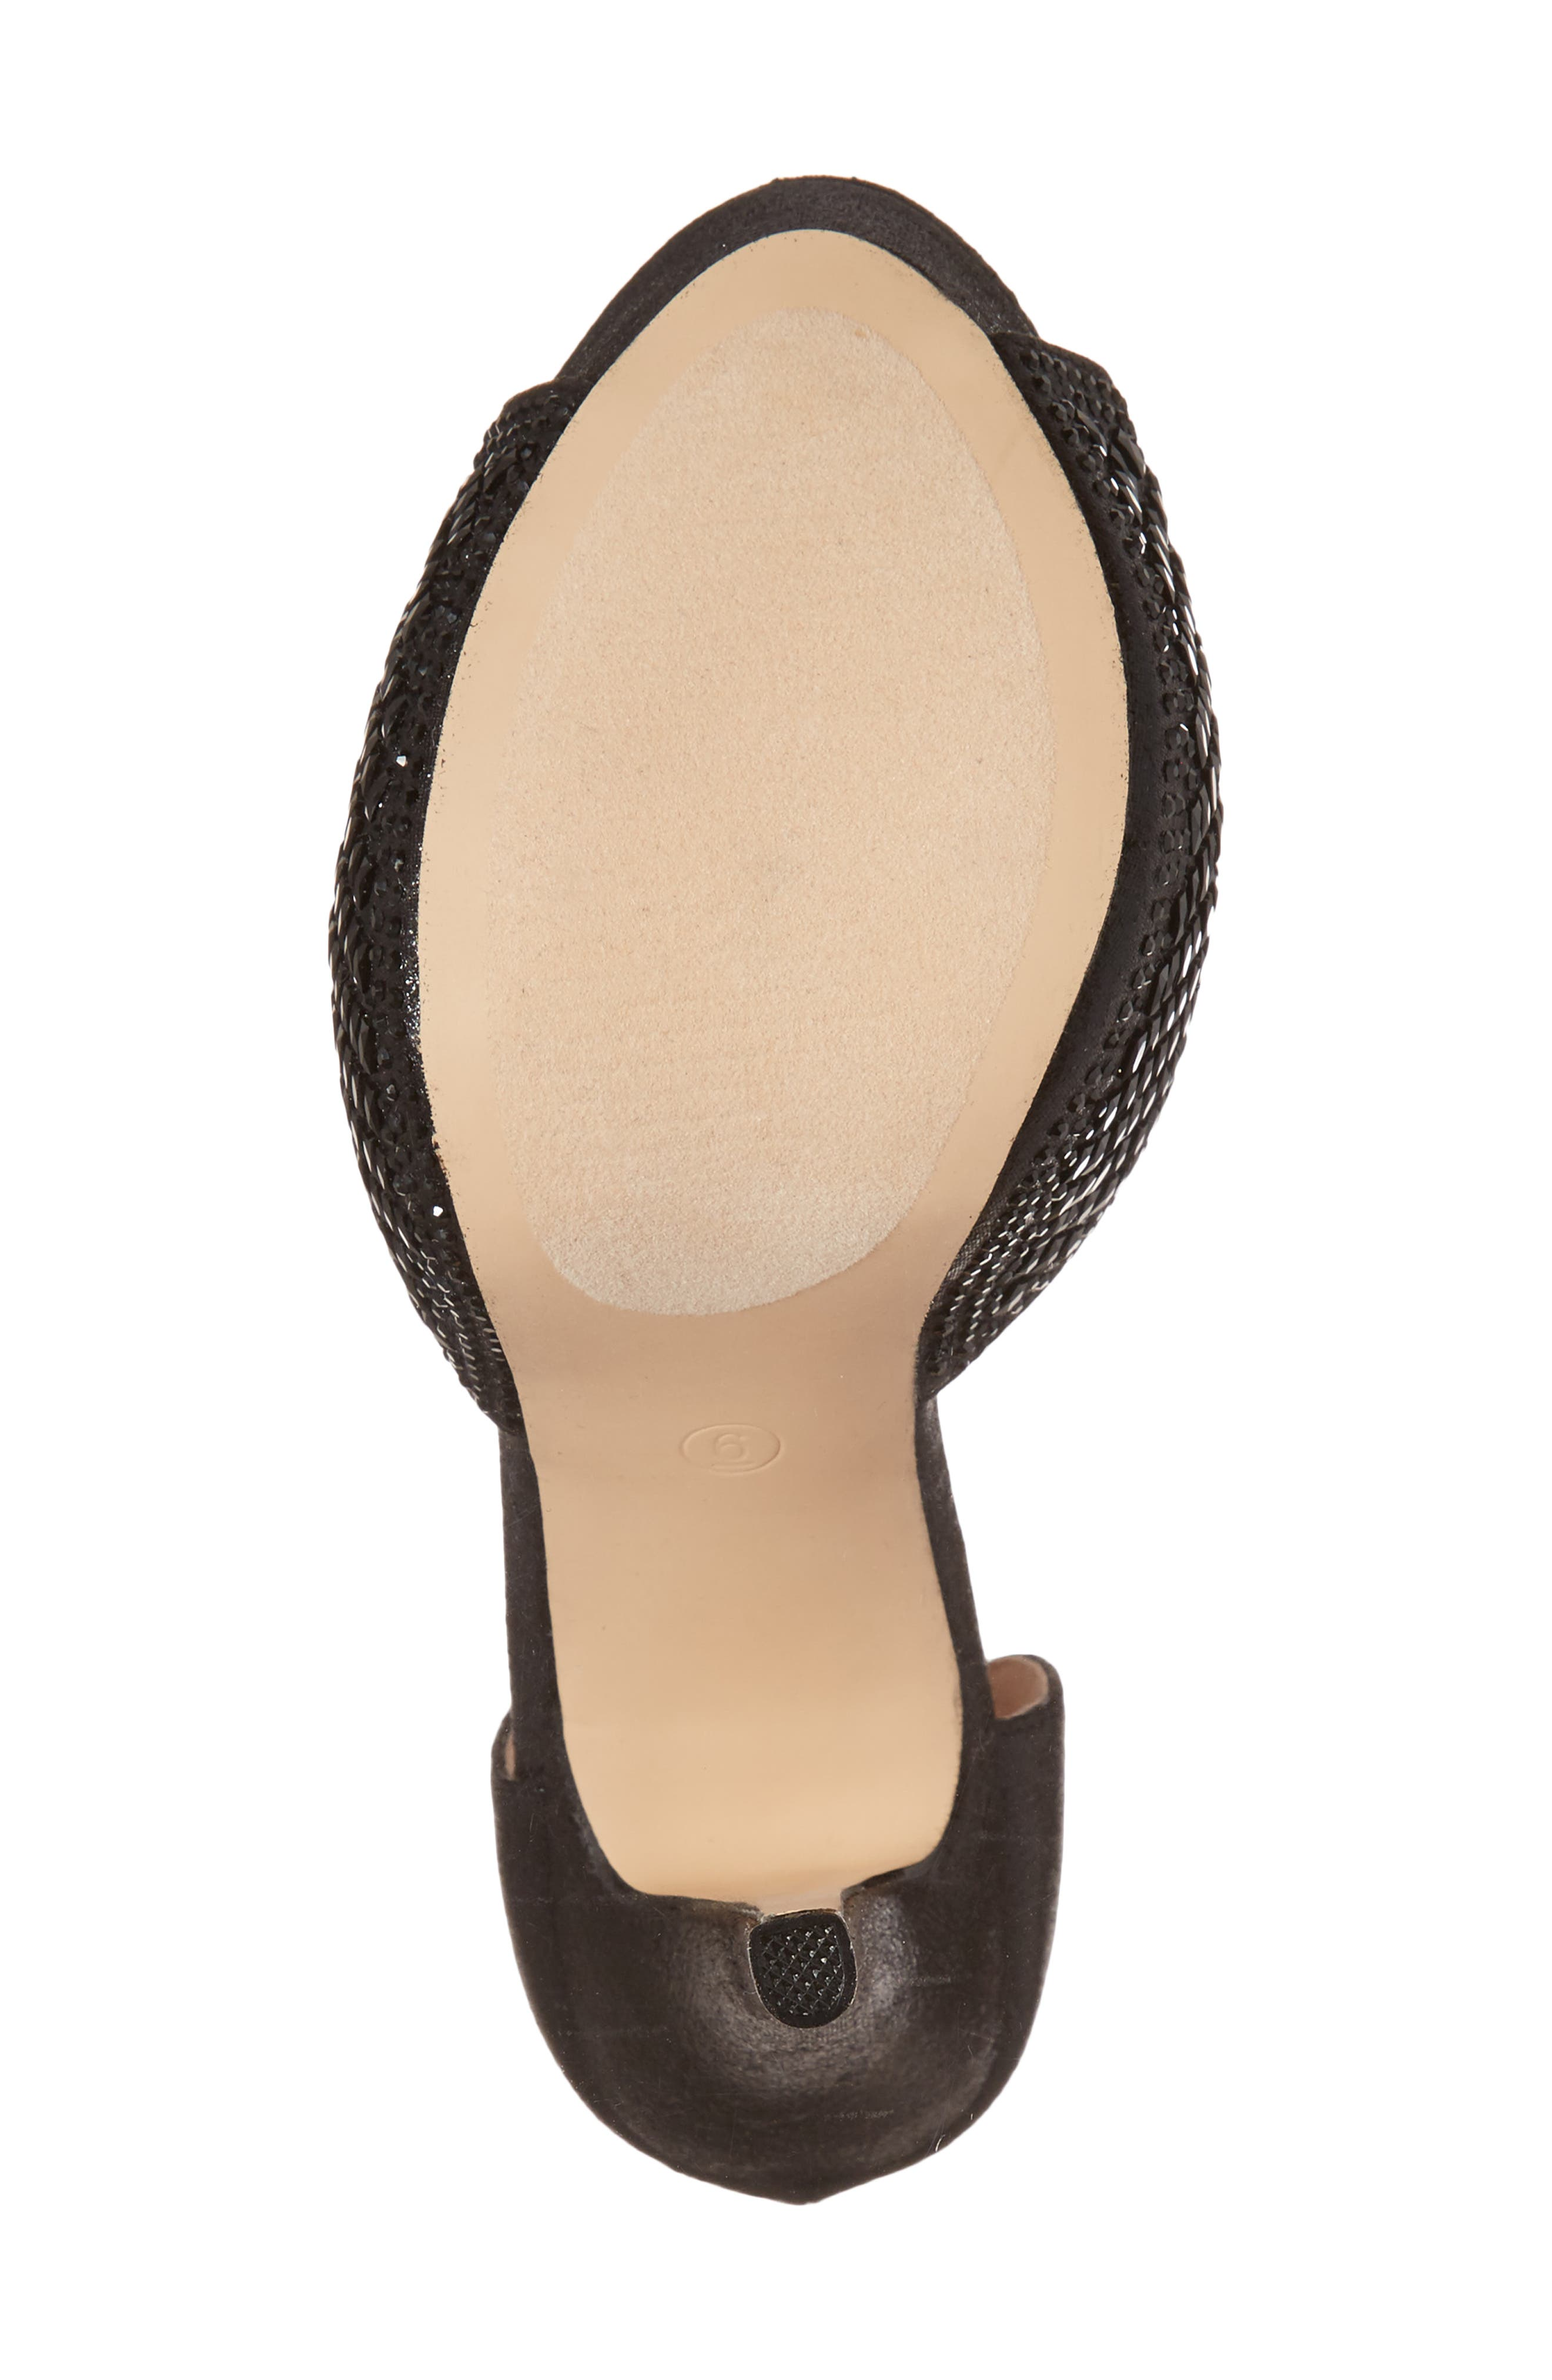 Vivian 4 Crystal Embellished Sandal,                             Alternate thumbnail 6, color,                             Black Shimmer